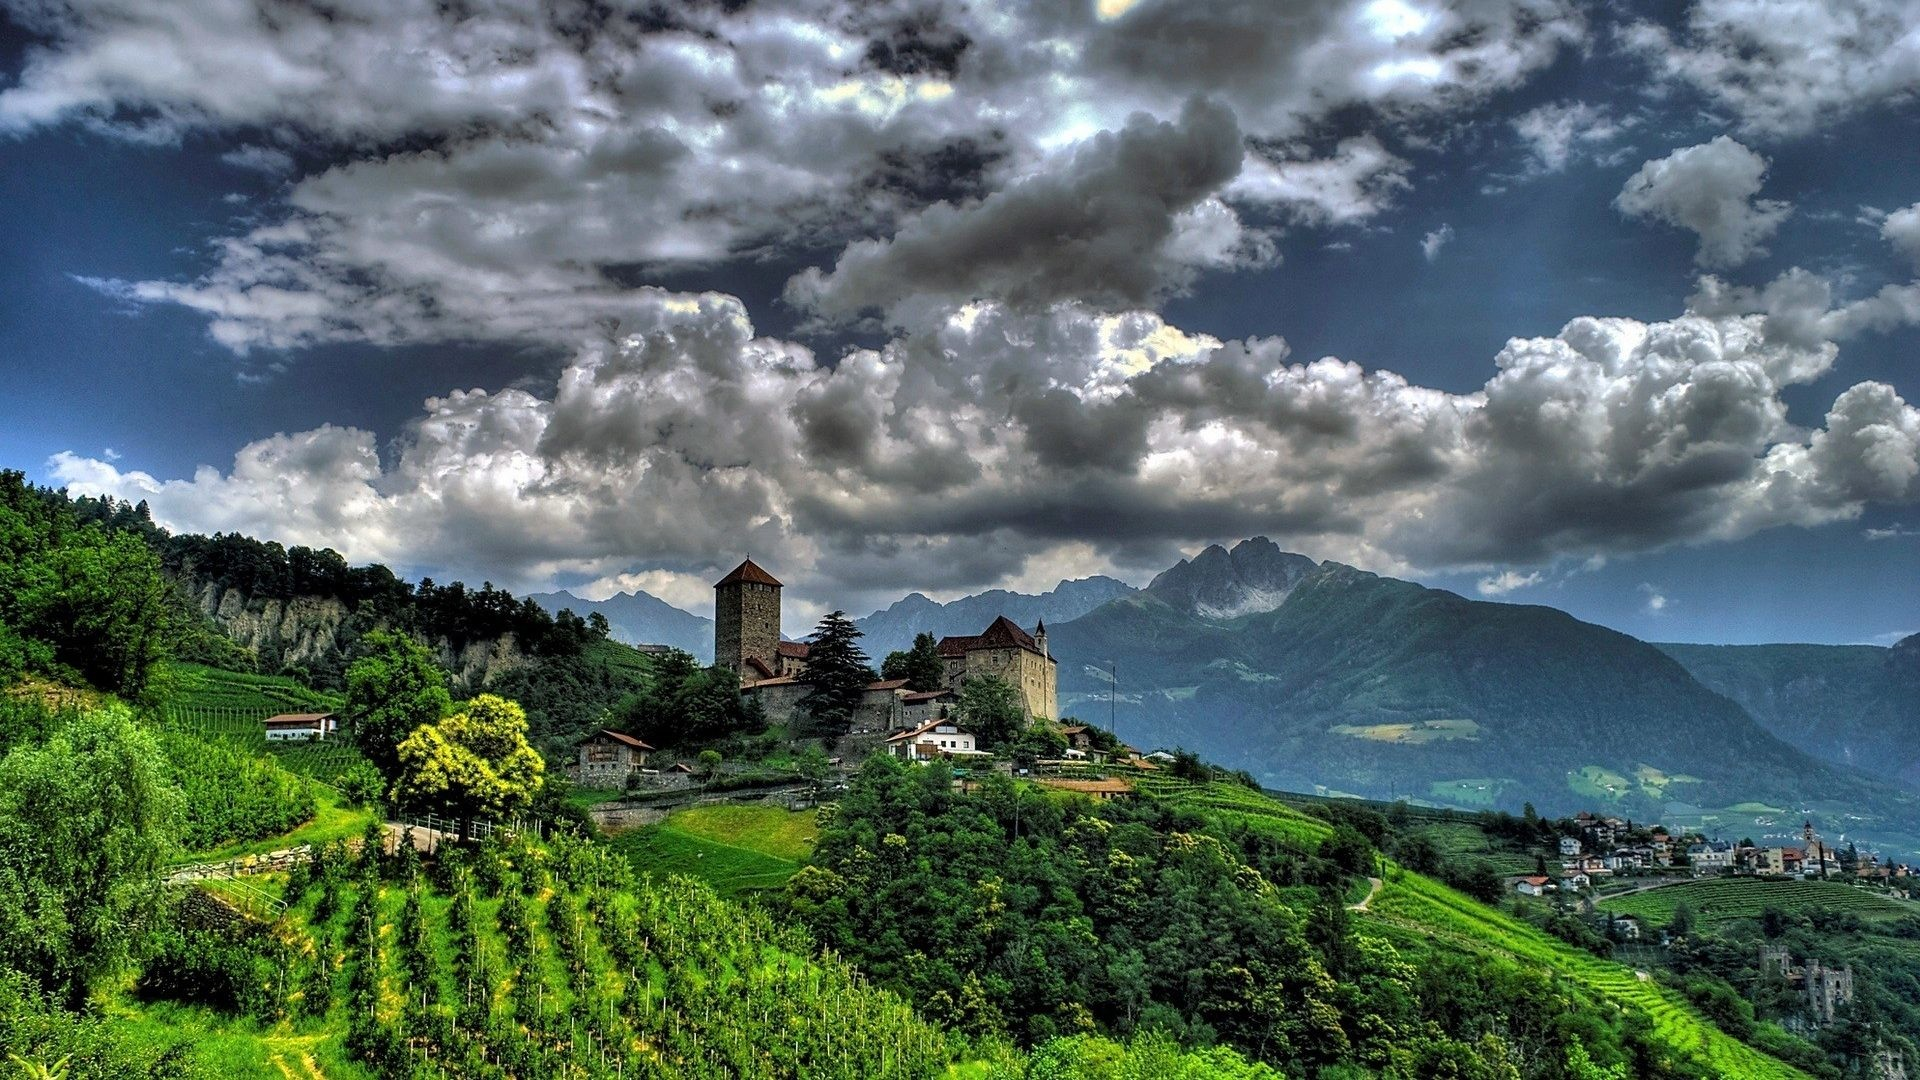 Mountains – Mountains Mountain Nature Italy Village Villages Clouds  Wallpapers 4k for HD 16:9